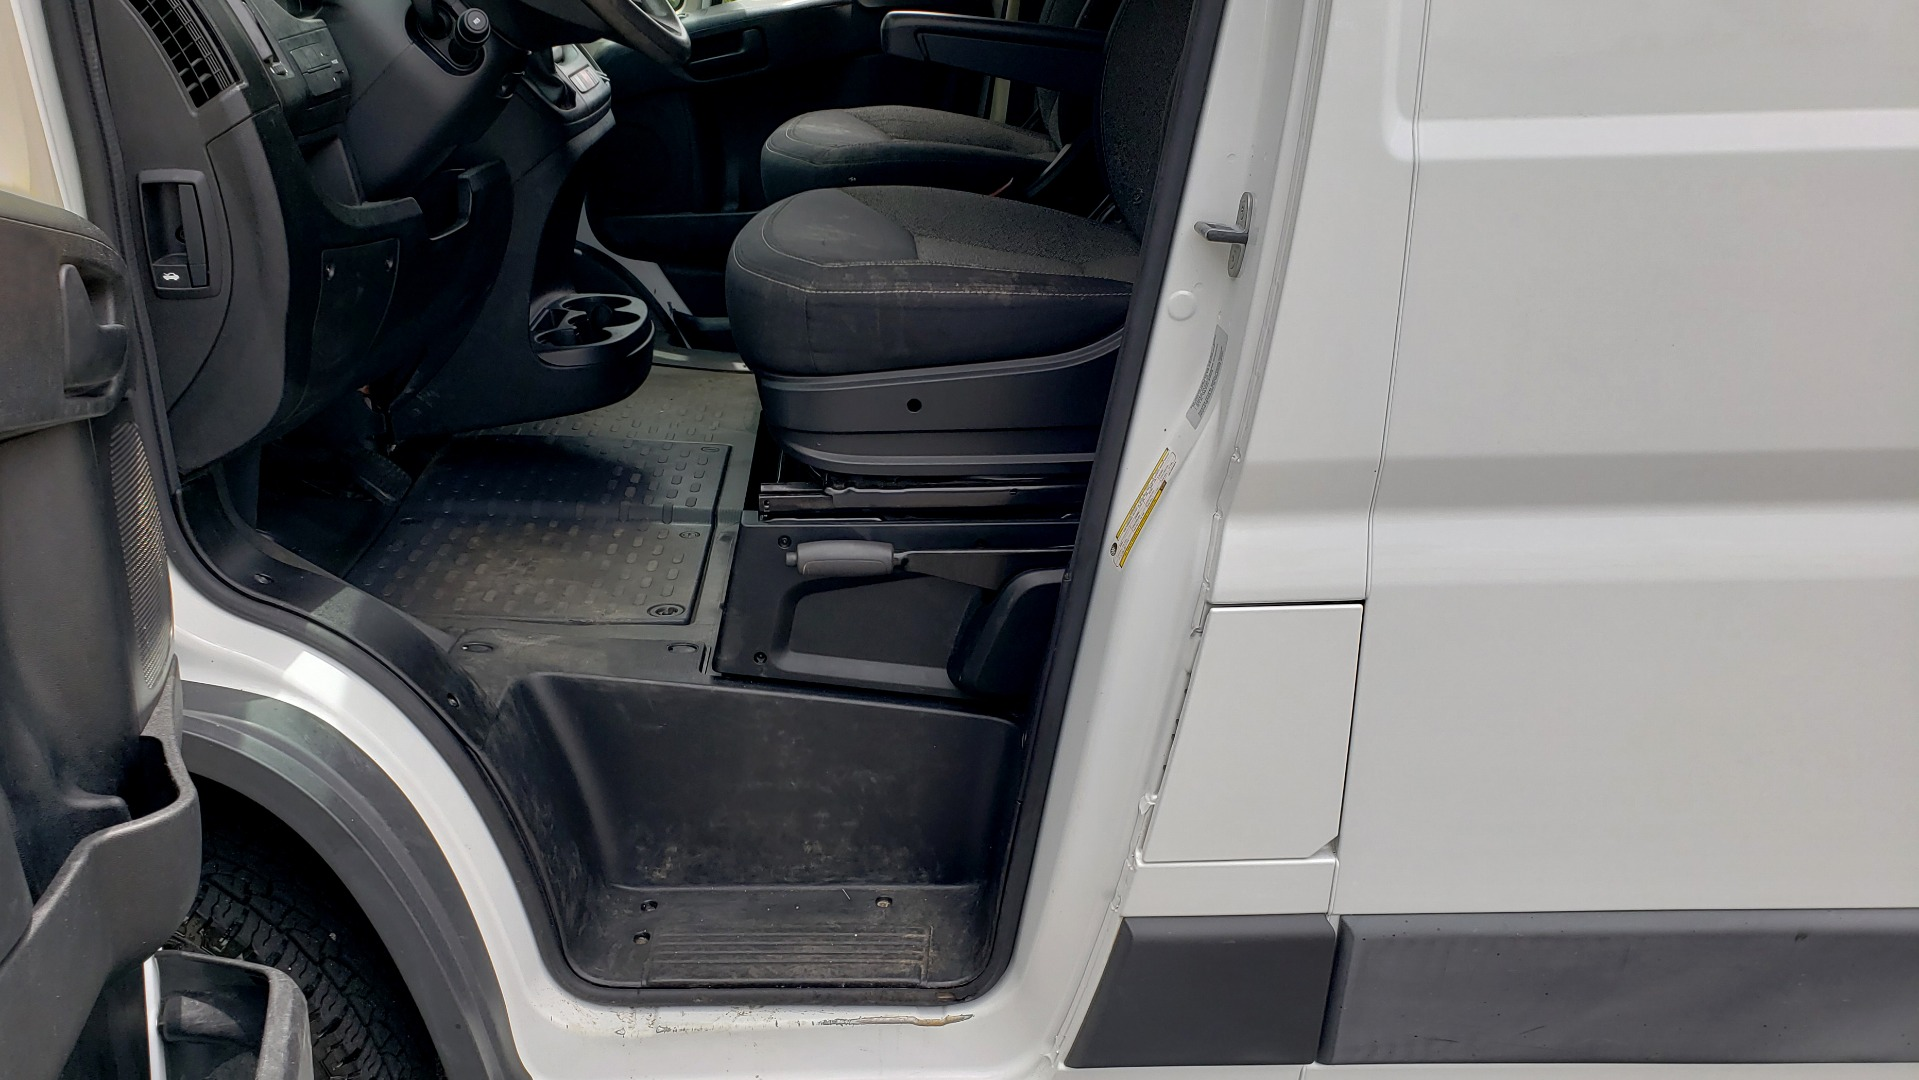 Used 2016 Ram PROMASTER CARGO VAN 136 WB / 3.6L V6 / AUTO / ROOF-RACK / REARVIEW / SEATS 5 for sale $15,995 at Formula Imports in Charlotte NC 28227 38